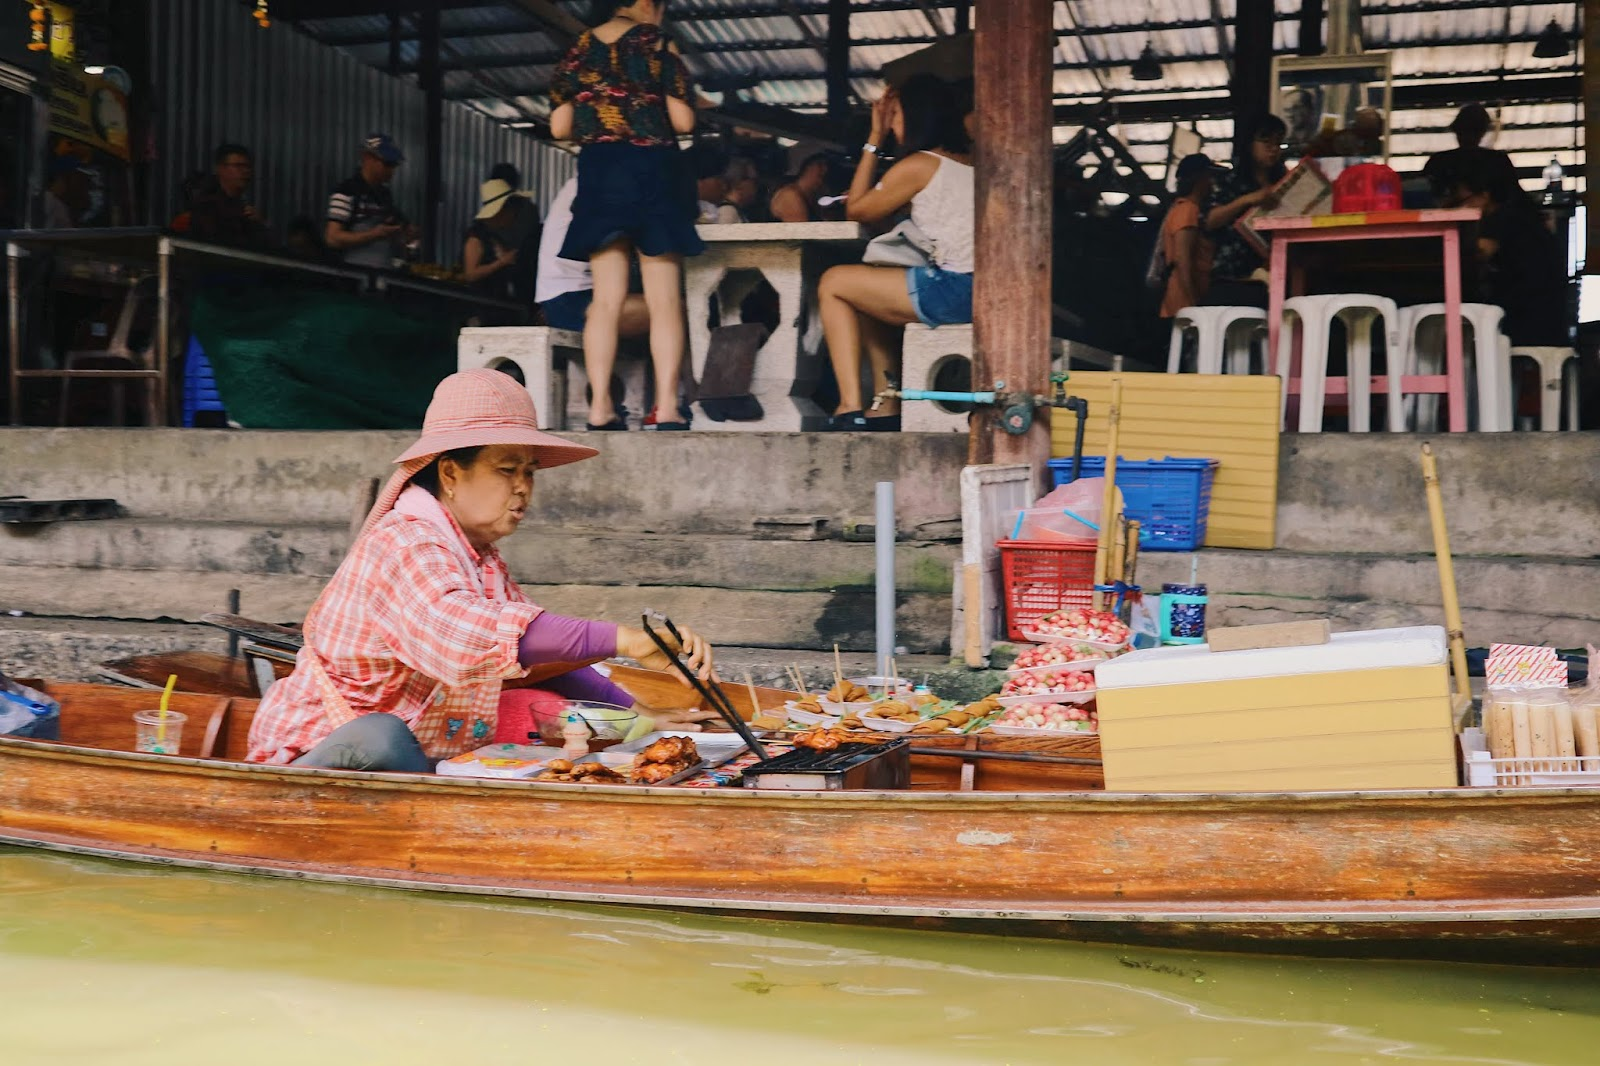 Vendor at Damnoen Saduak Floating Market